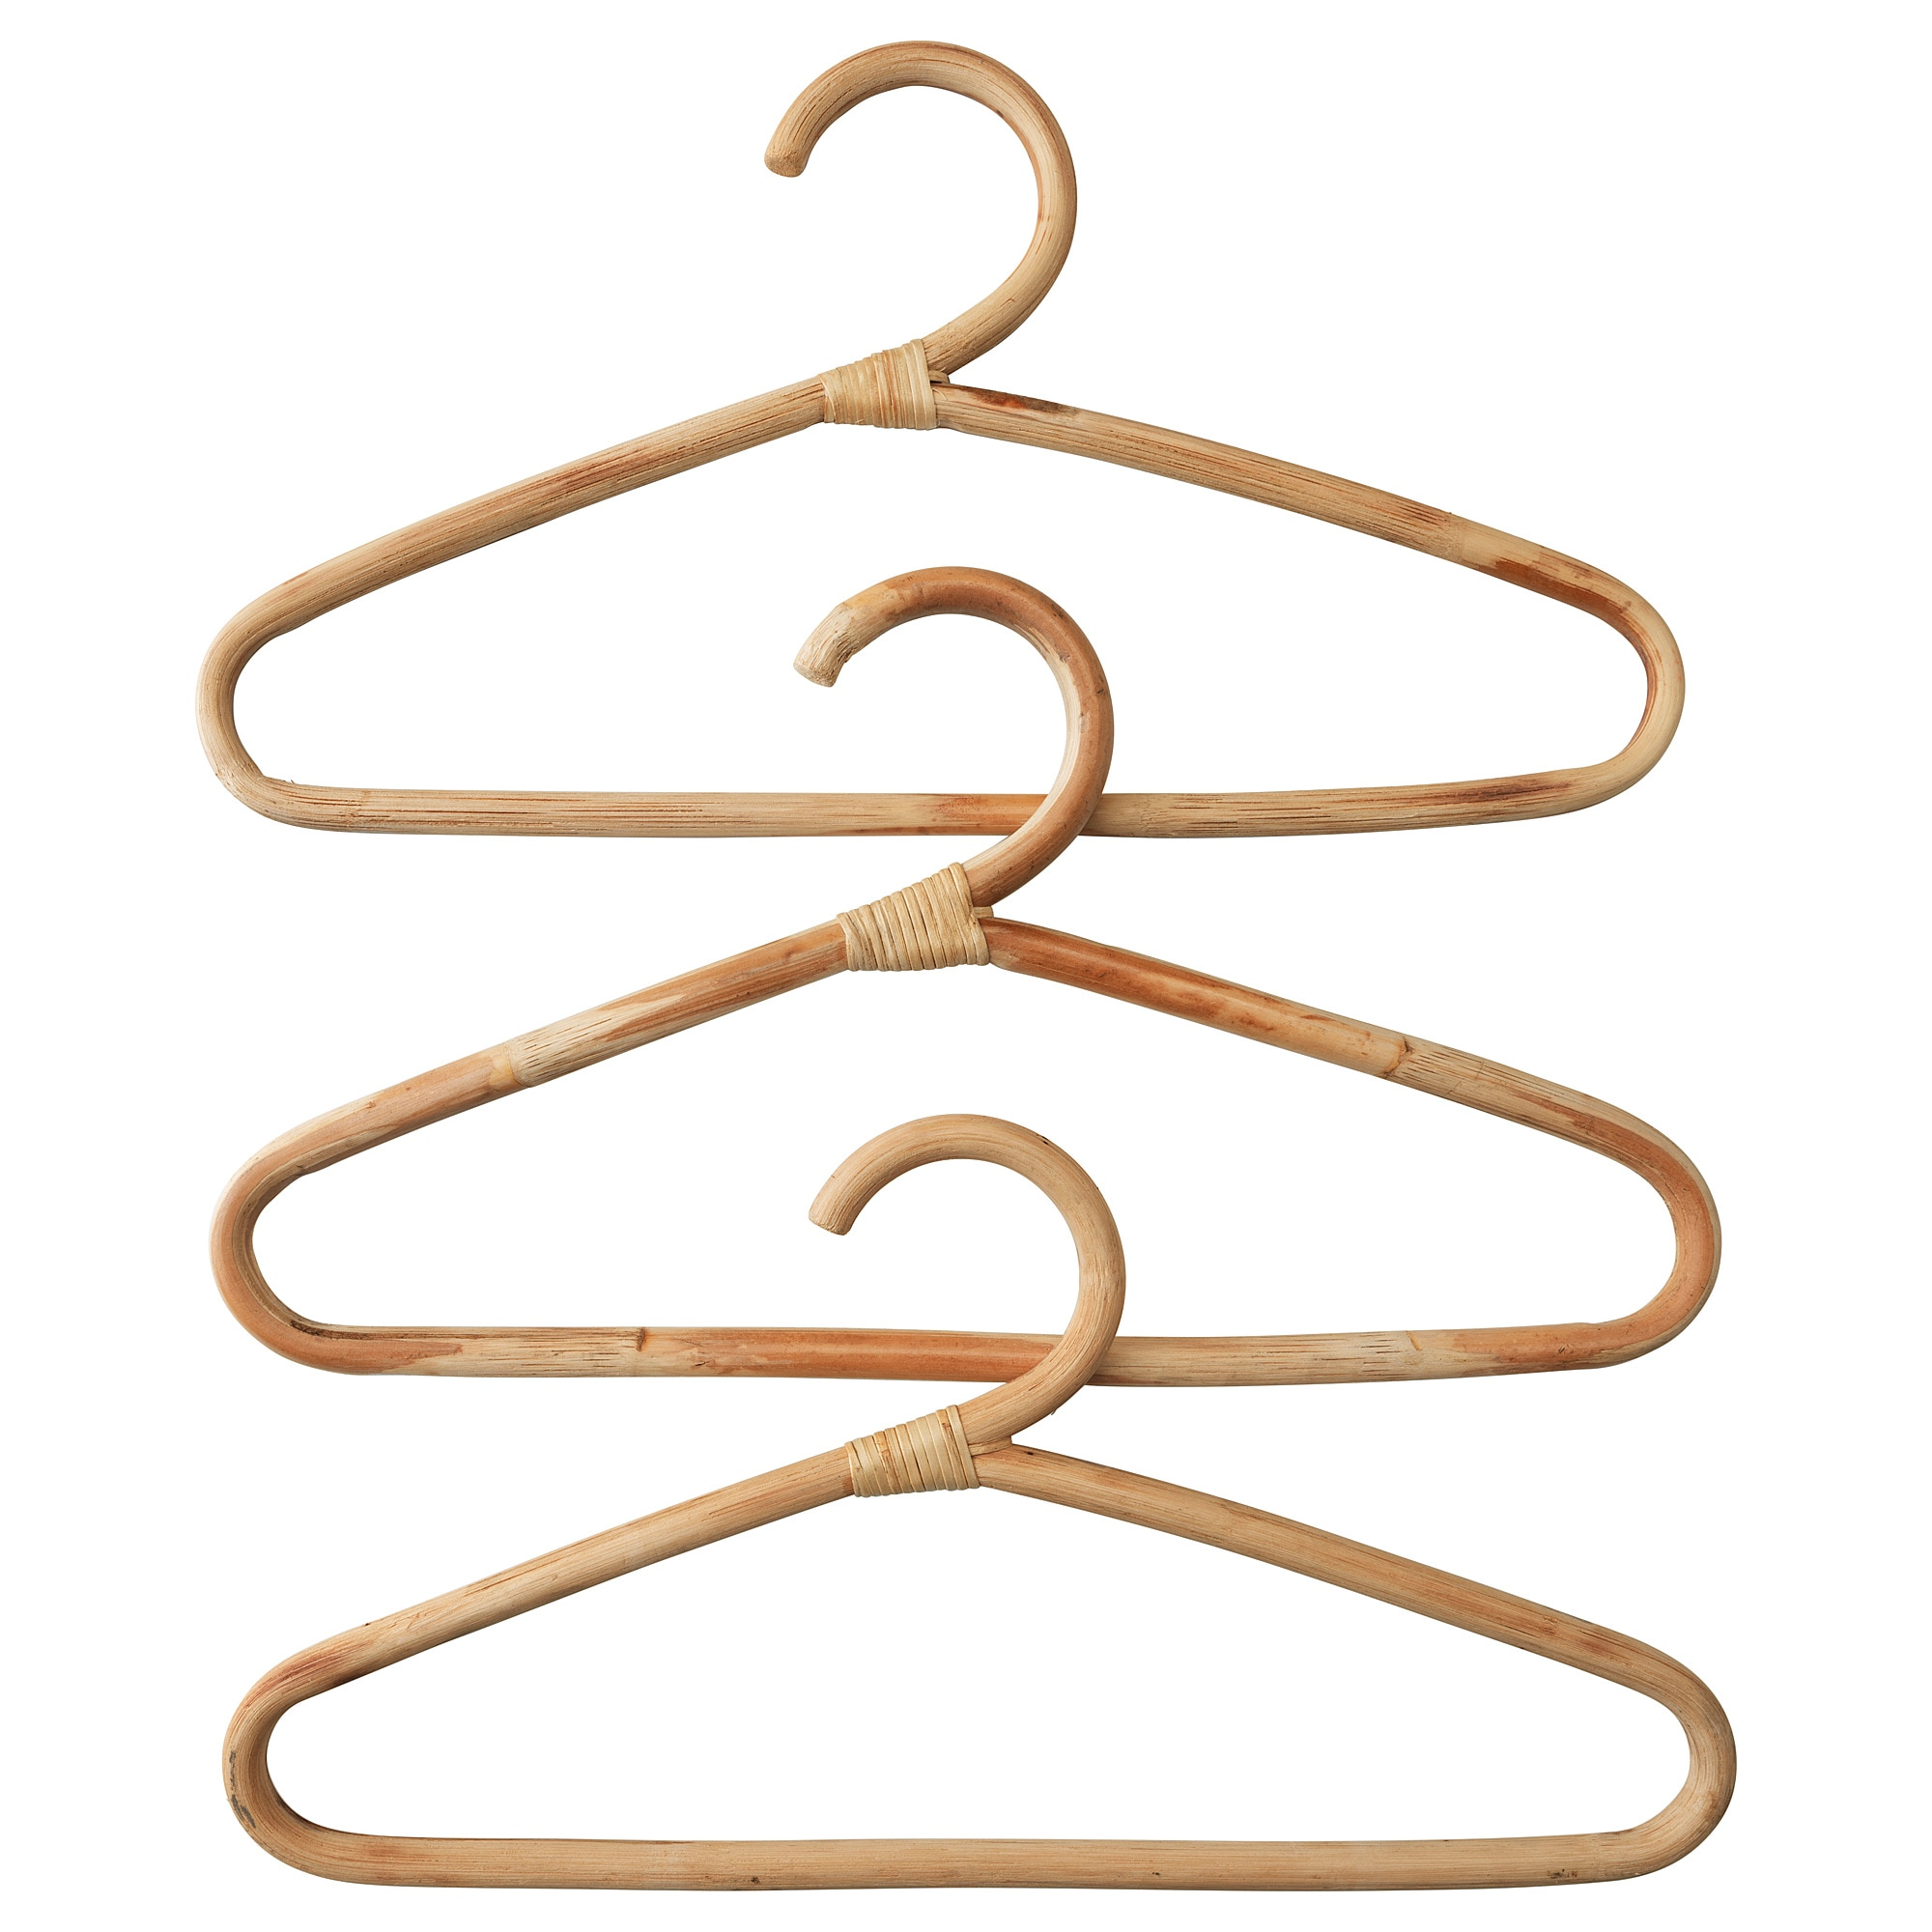 right hanger key black with interesting on for white decorative hooks material decoration plus wood word hangers wall design nice cute astonishing decor color from picture keys cool